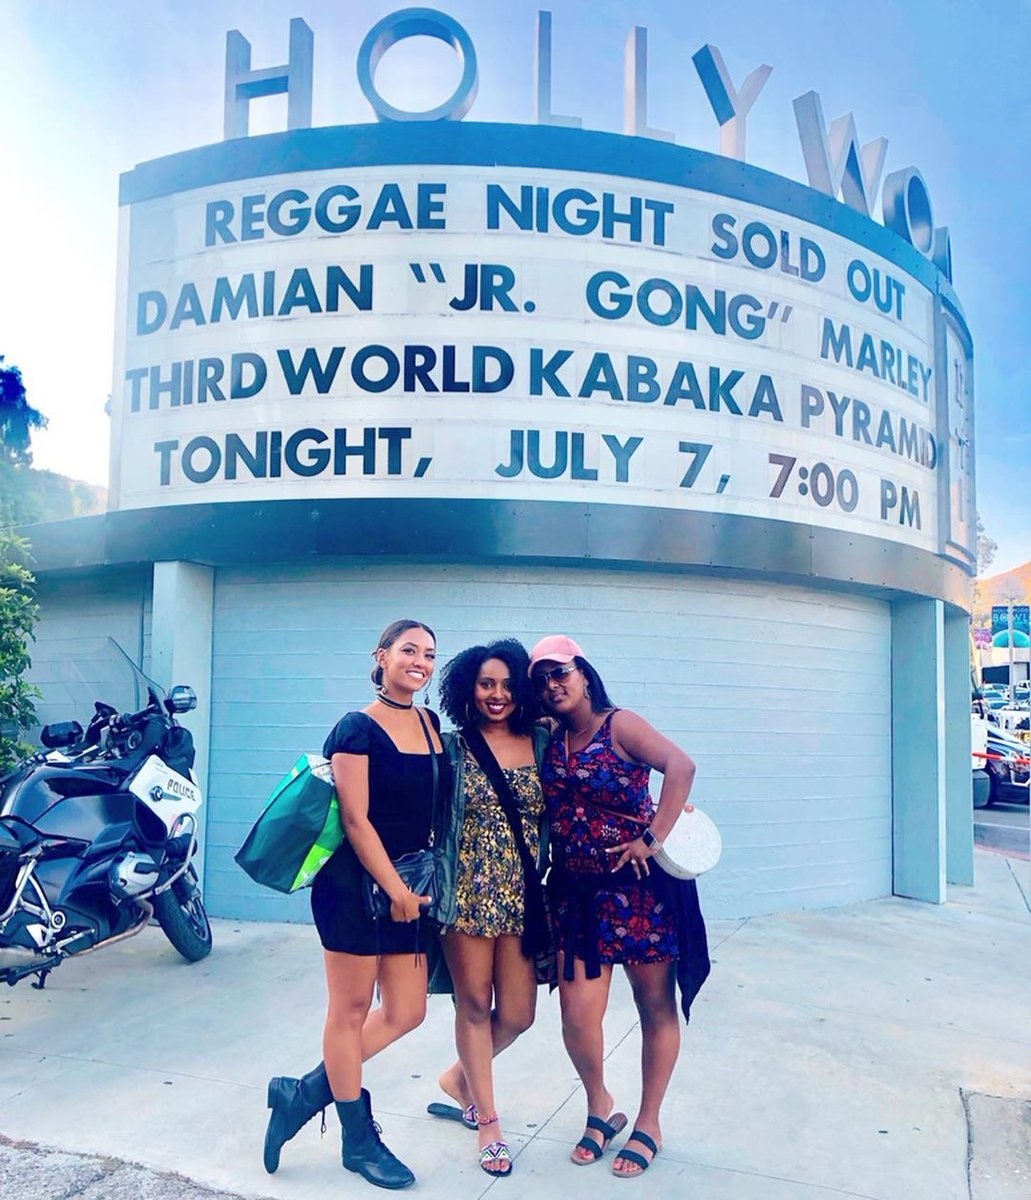 For #MarqueeMondays, we're taking a trip to Jamaica via Highland Ave. Who was there for this amazing Reggae Night lineup? ❤️💚💛 | 📸: oneluvmiri (IG) https://t.co/F90xDQ6MGB